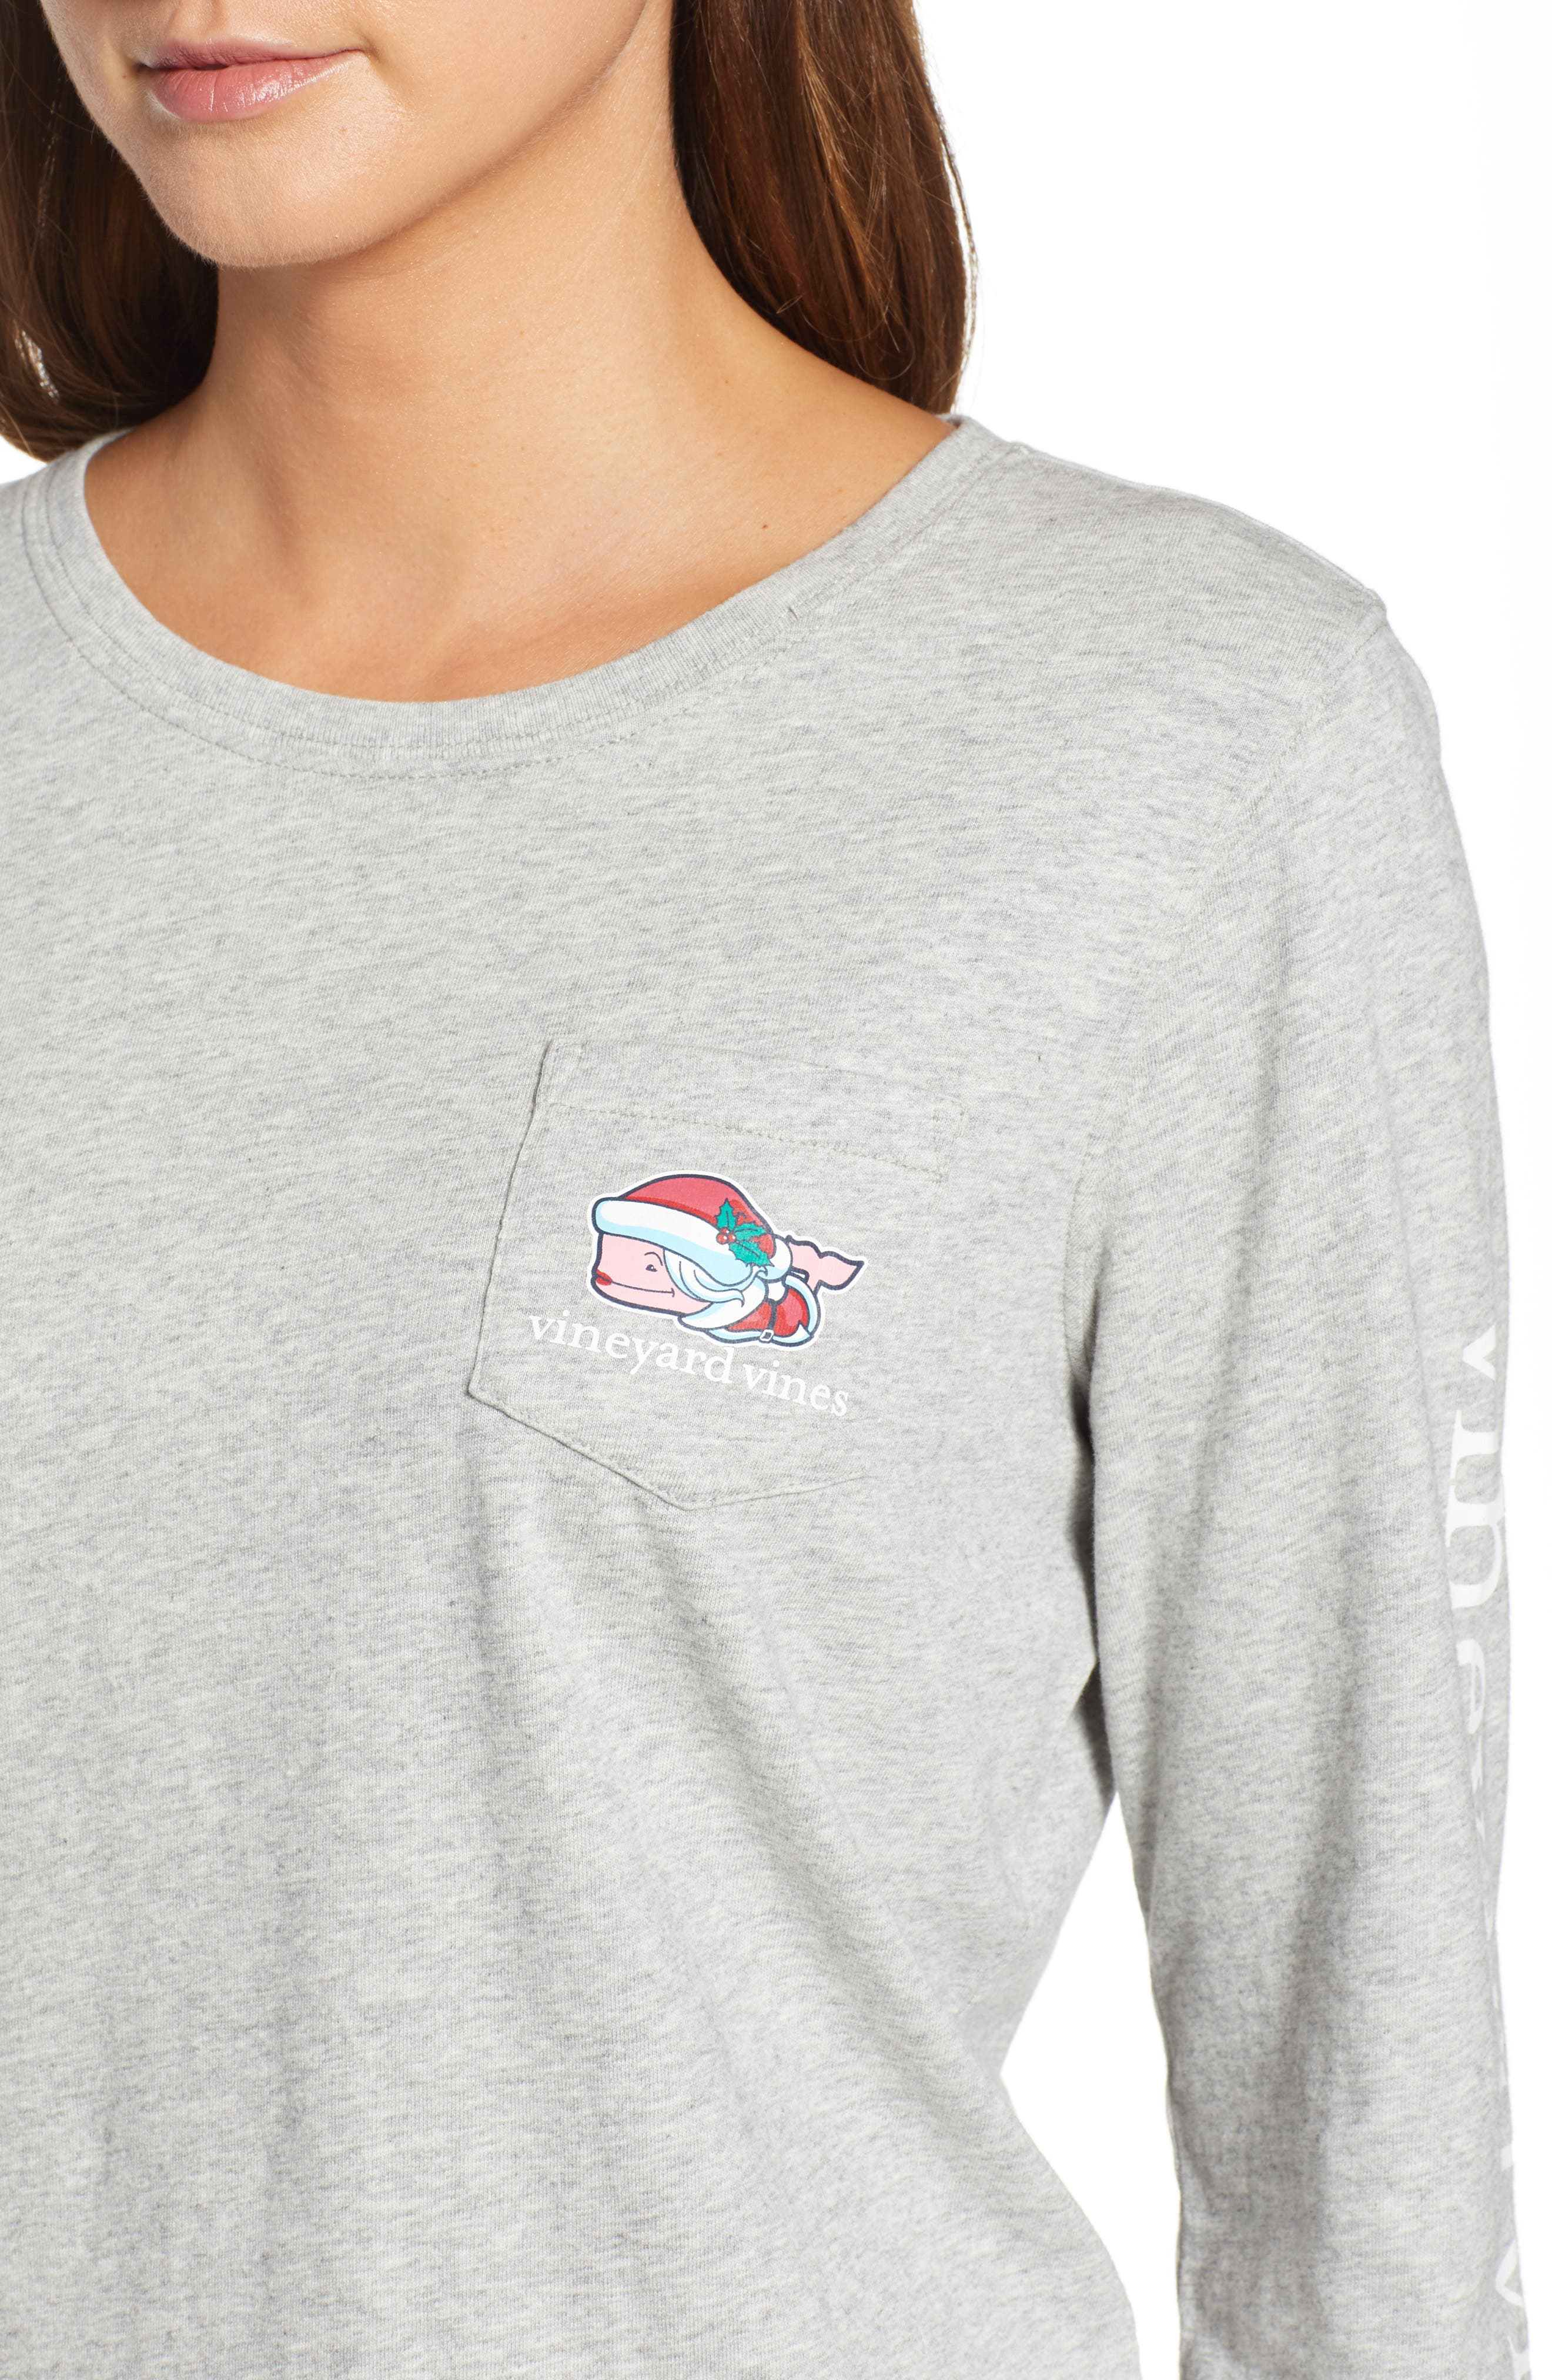 Mrs. Claus Pocket Tee,                             Alternate thumbnail 4, color,                             GRAY HEATHER